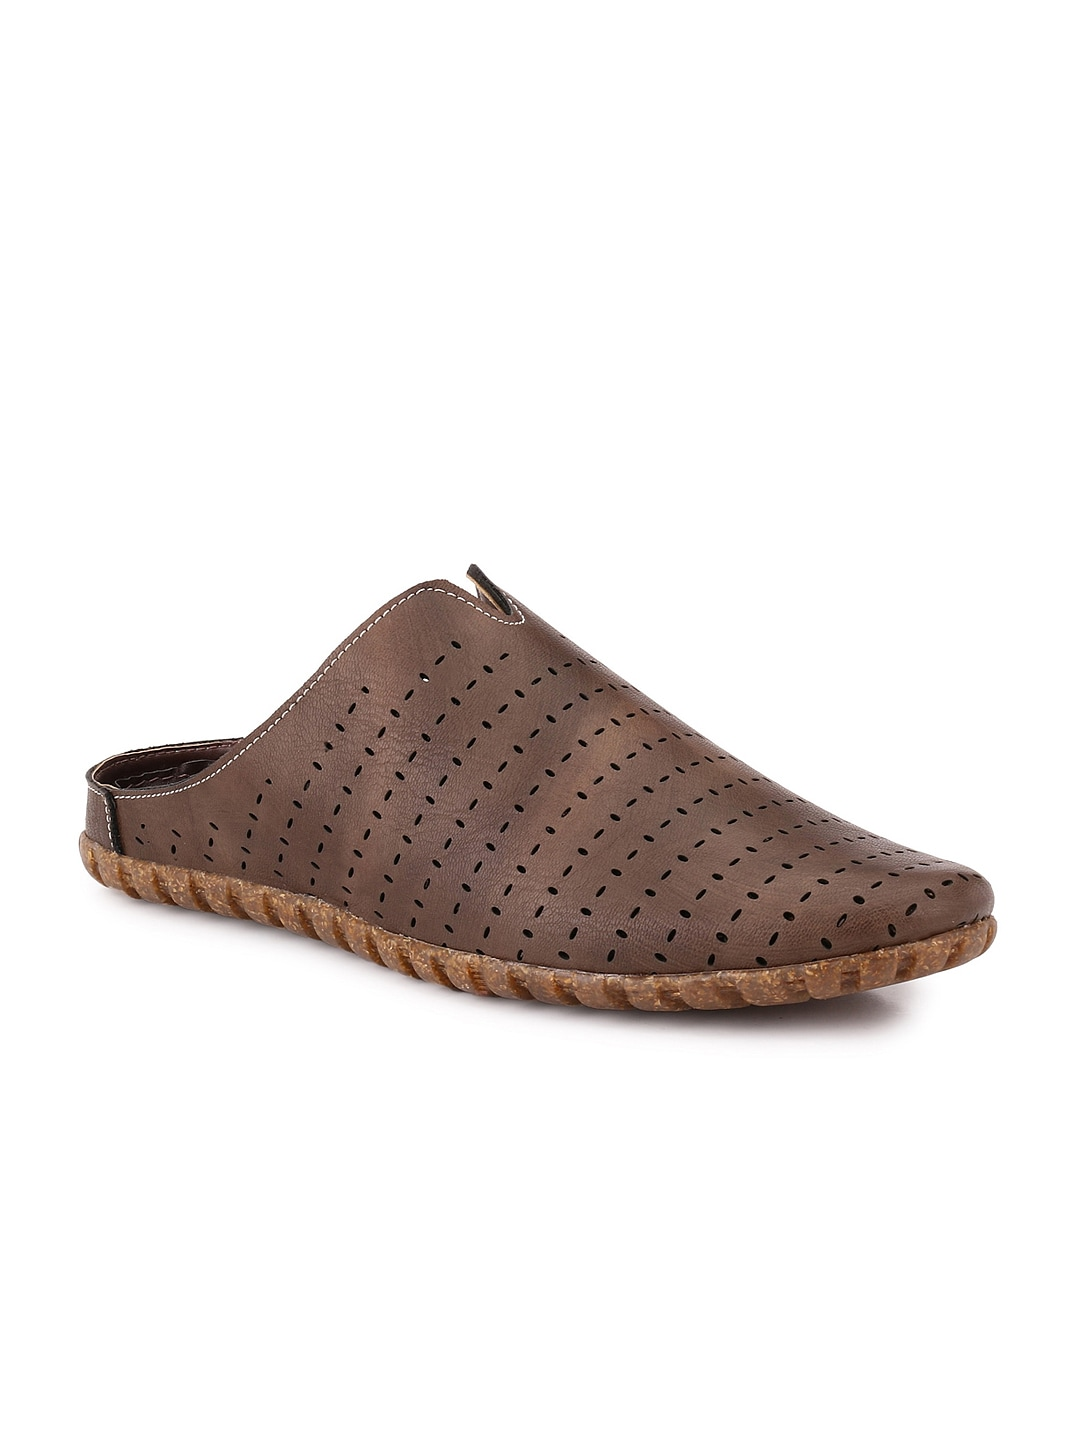 72d3f21e0c2 Buy sandals for men   OFF33% Discounted